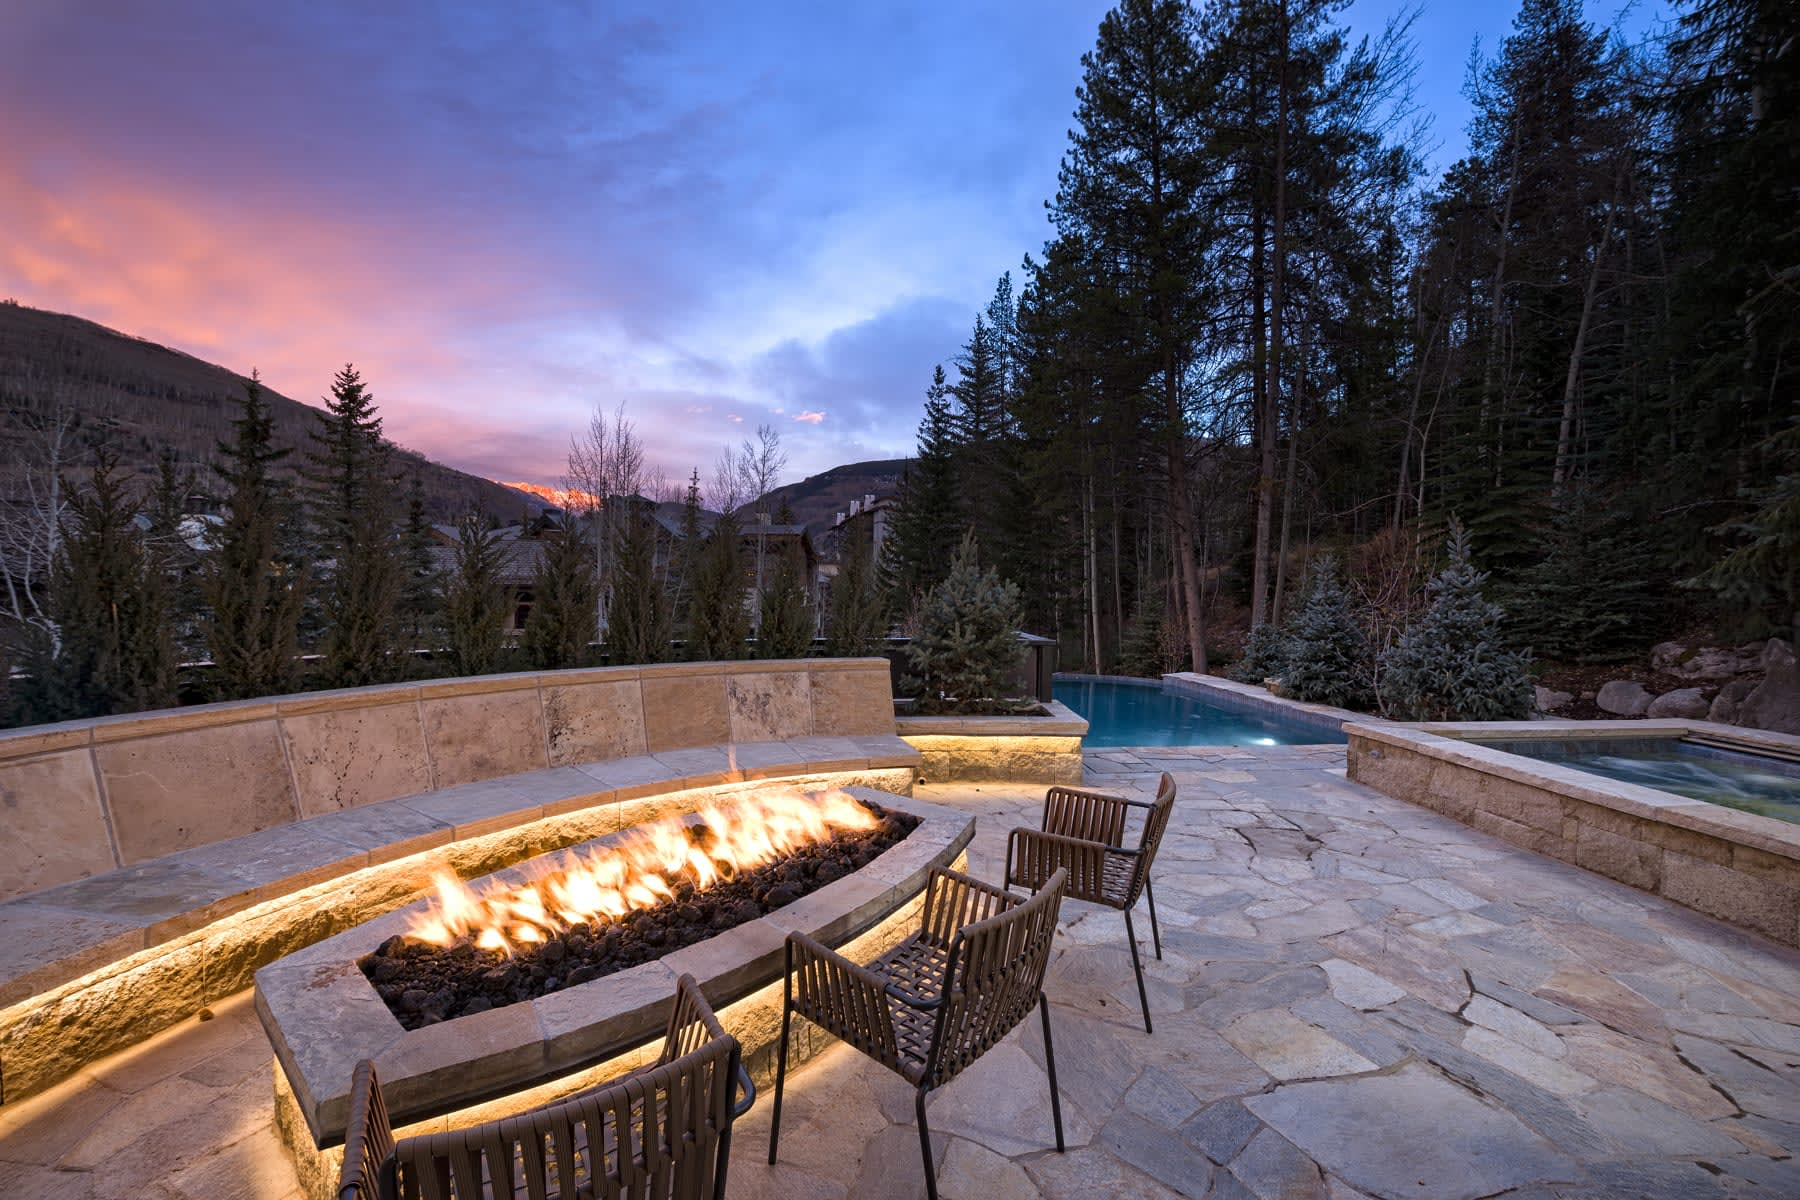 Tye Stockton sets a record-smashing sale in Vail Village for $57,250,000